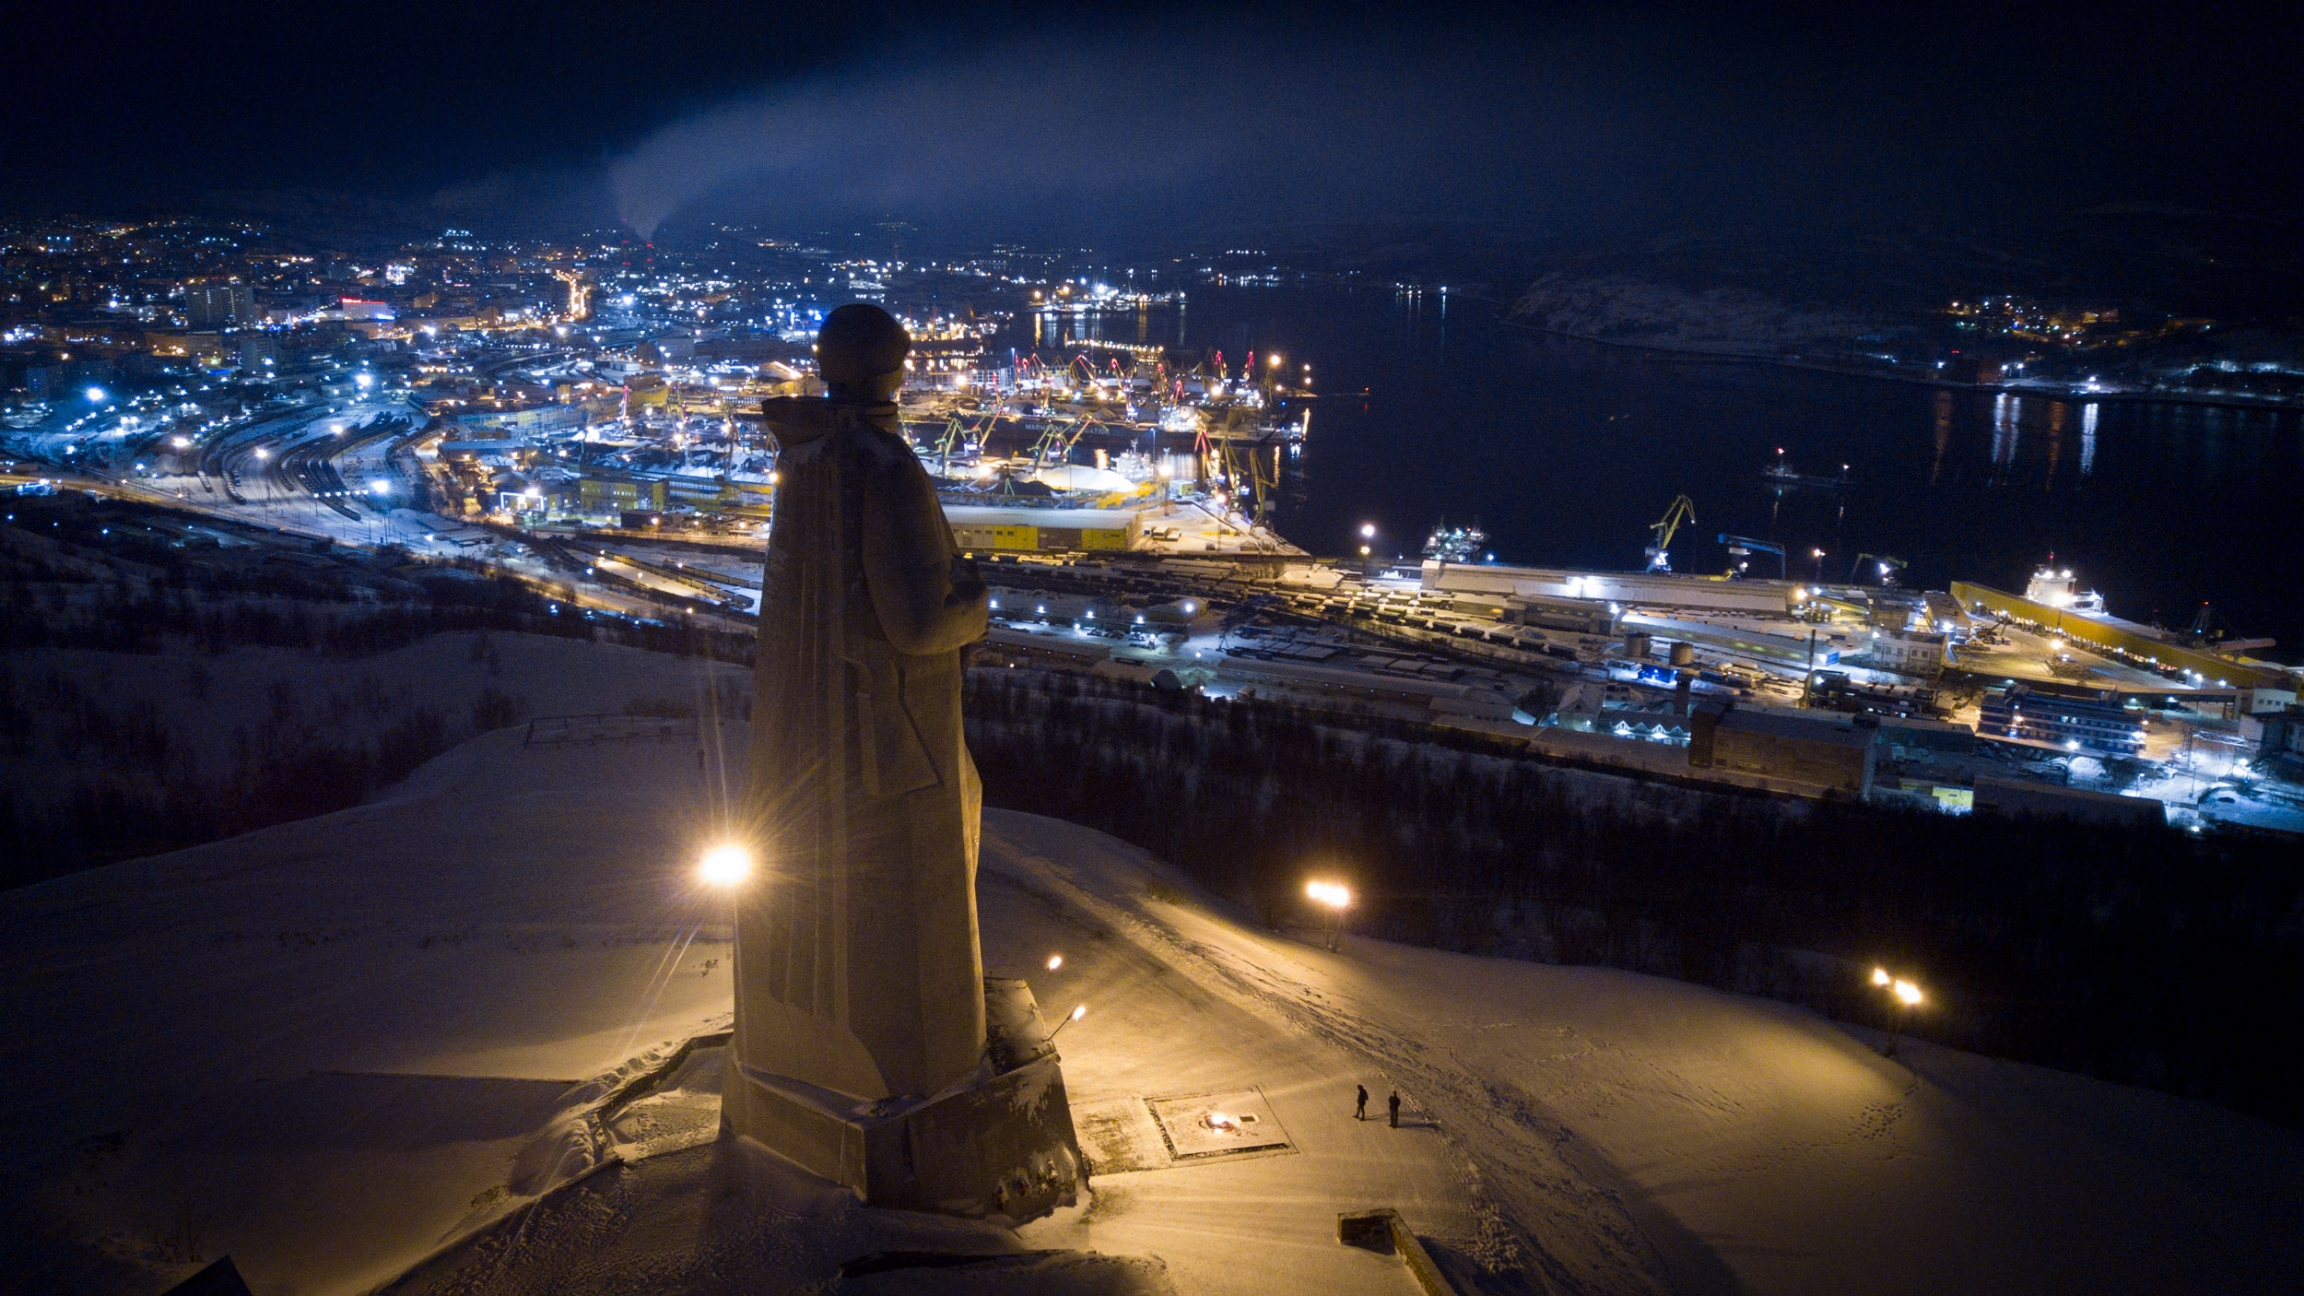 The Alyosha monument stands looking out over Murmansk off in the distance on a dark night.